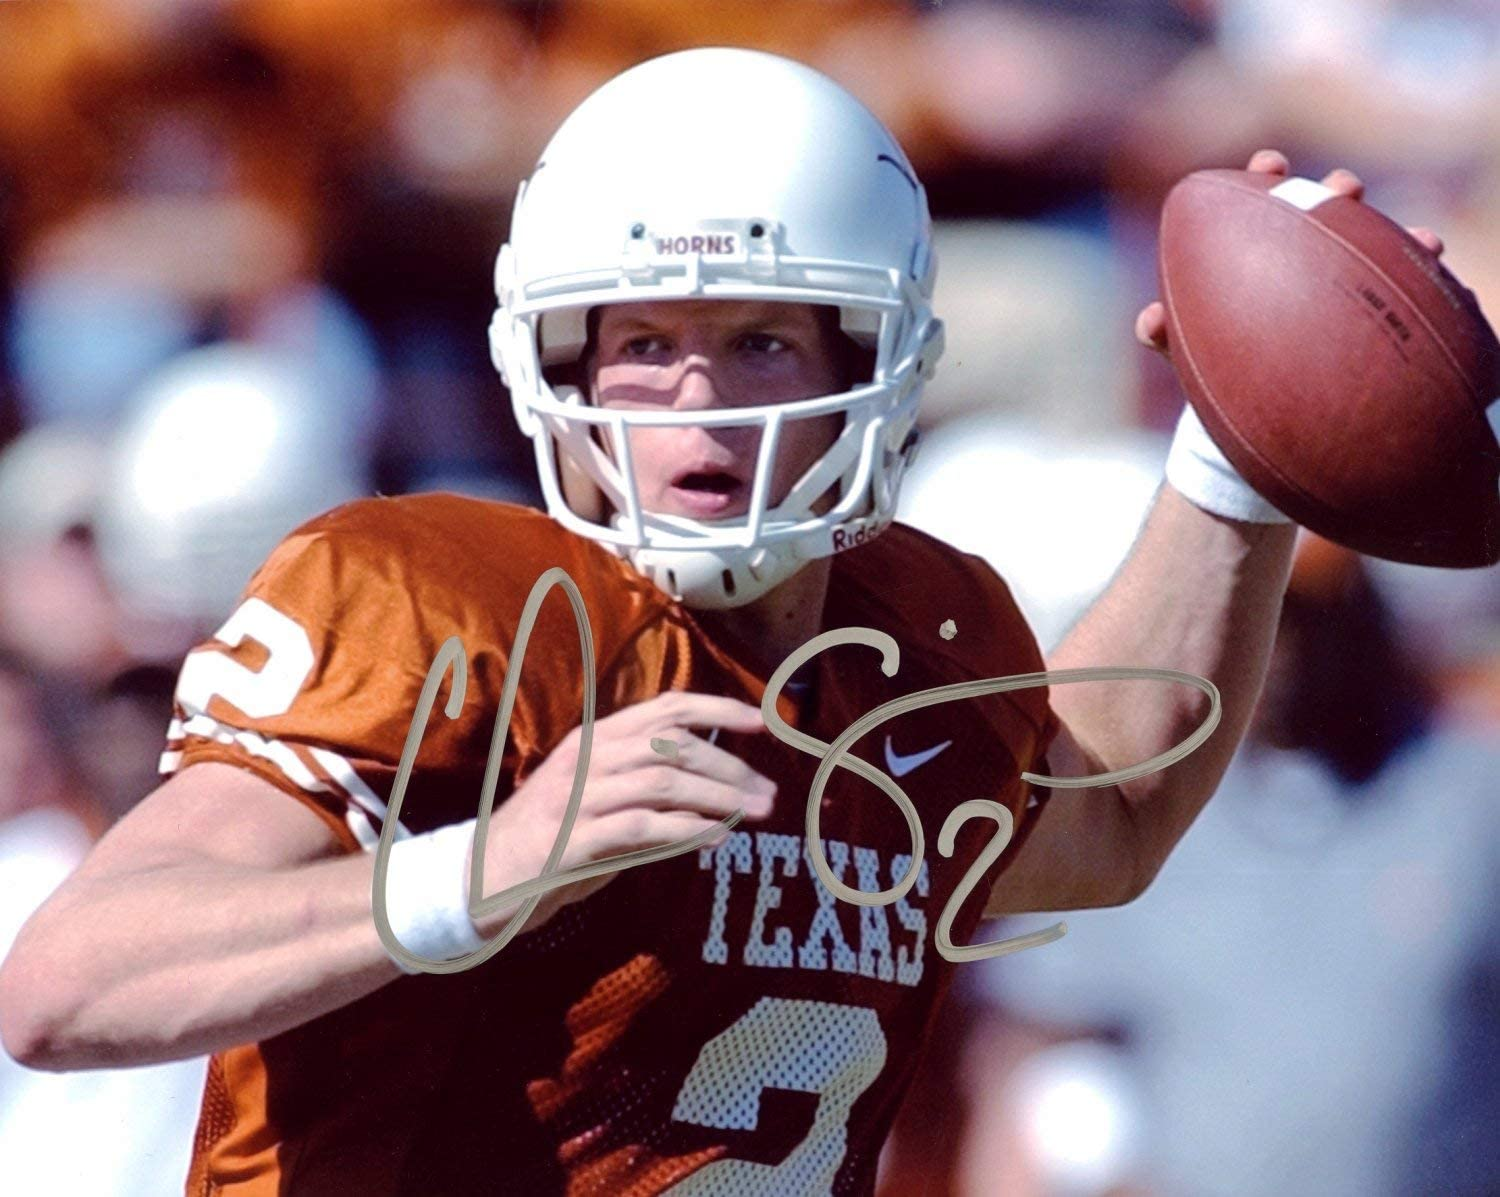 Chris Simms Texas Longhorns Autographed Signed 8x10 Photo Certified Authentic